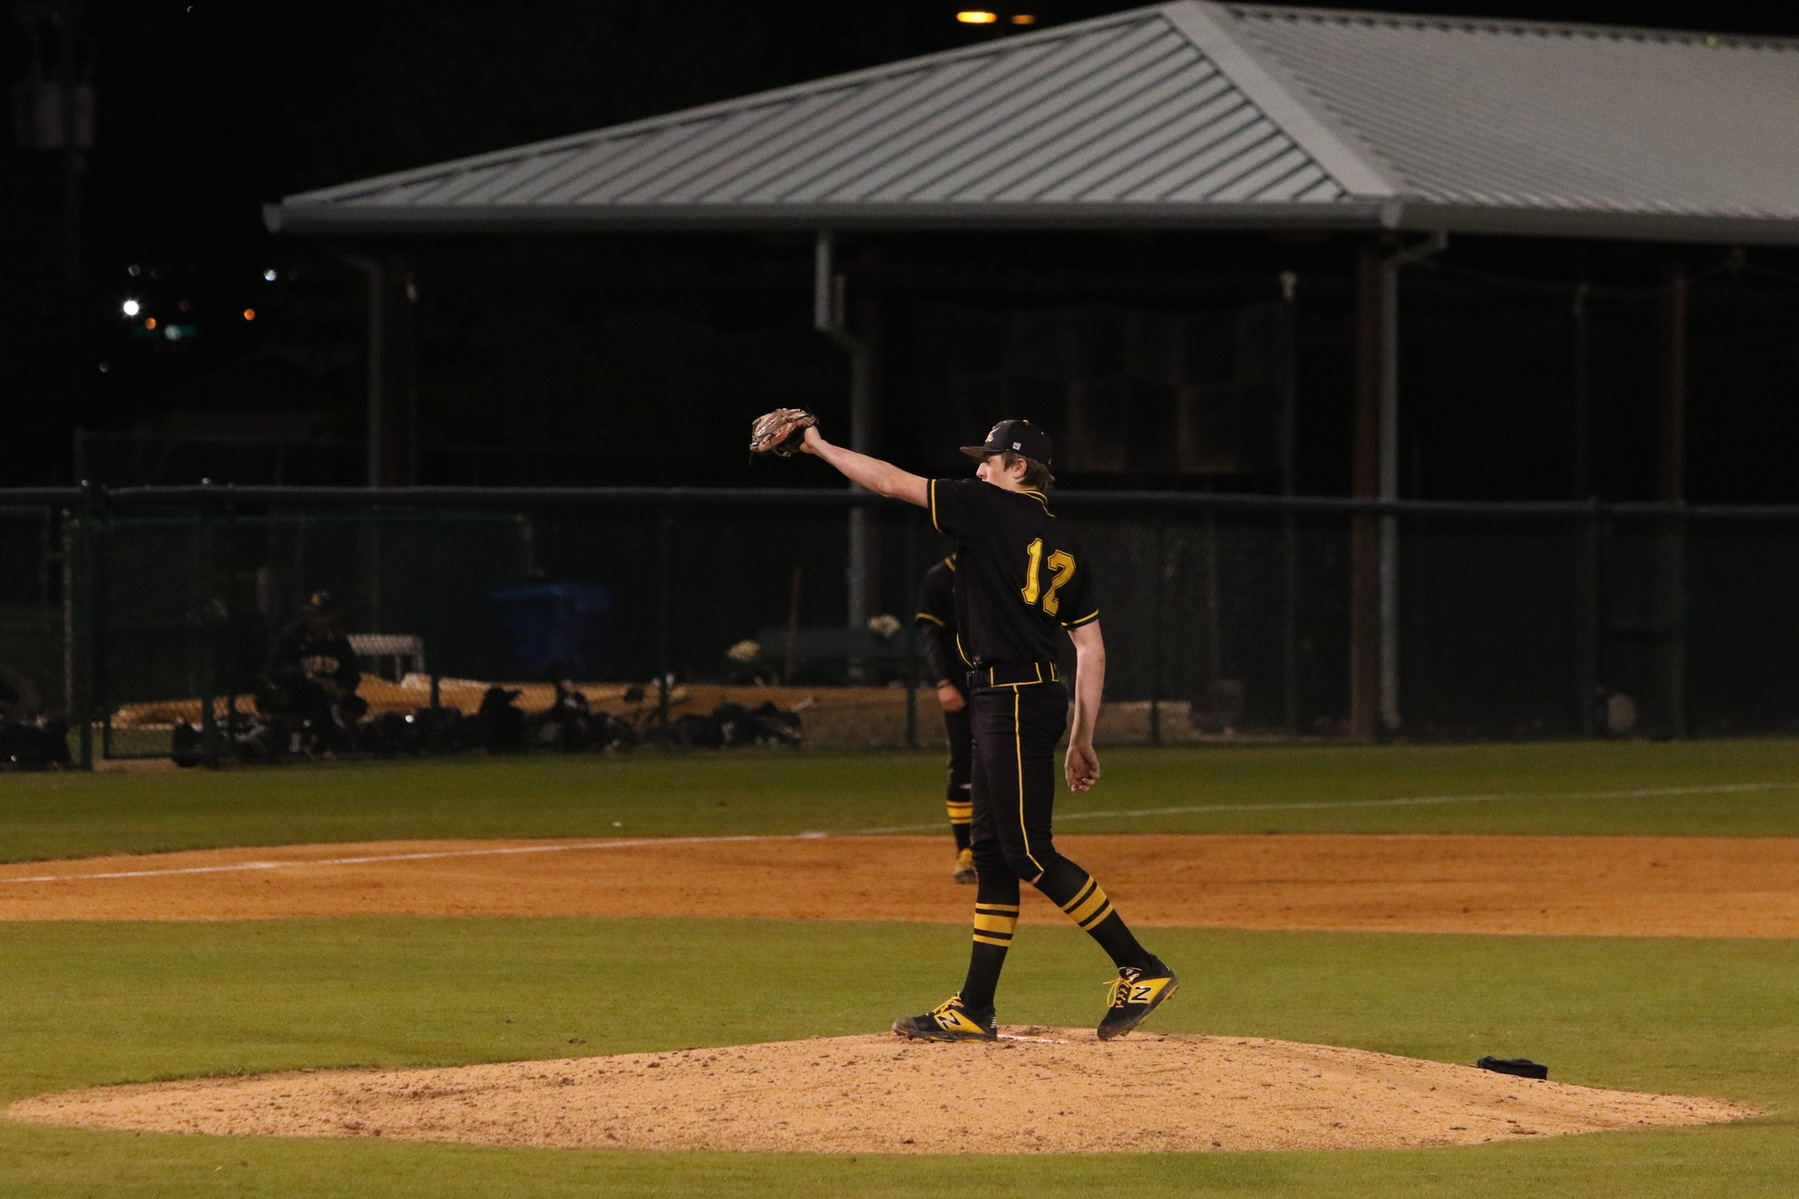 Pirates Overpower Austin College in Game 1 of Doubleheader